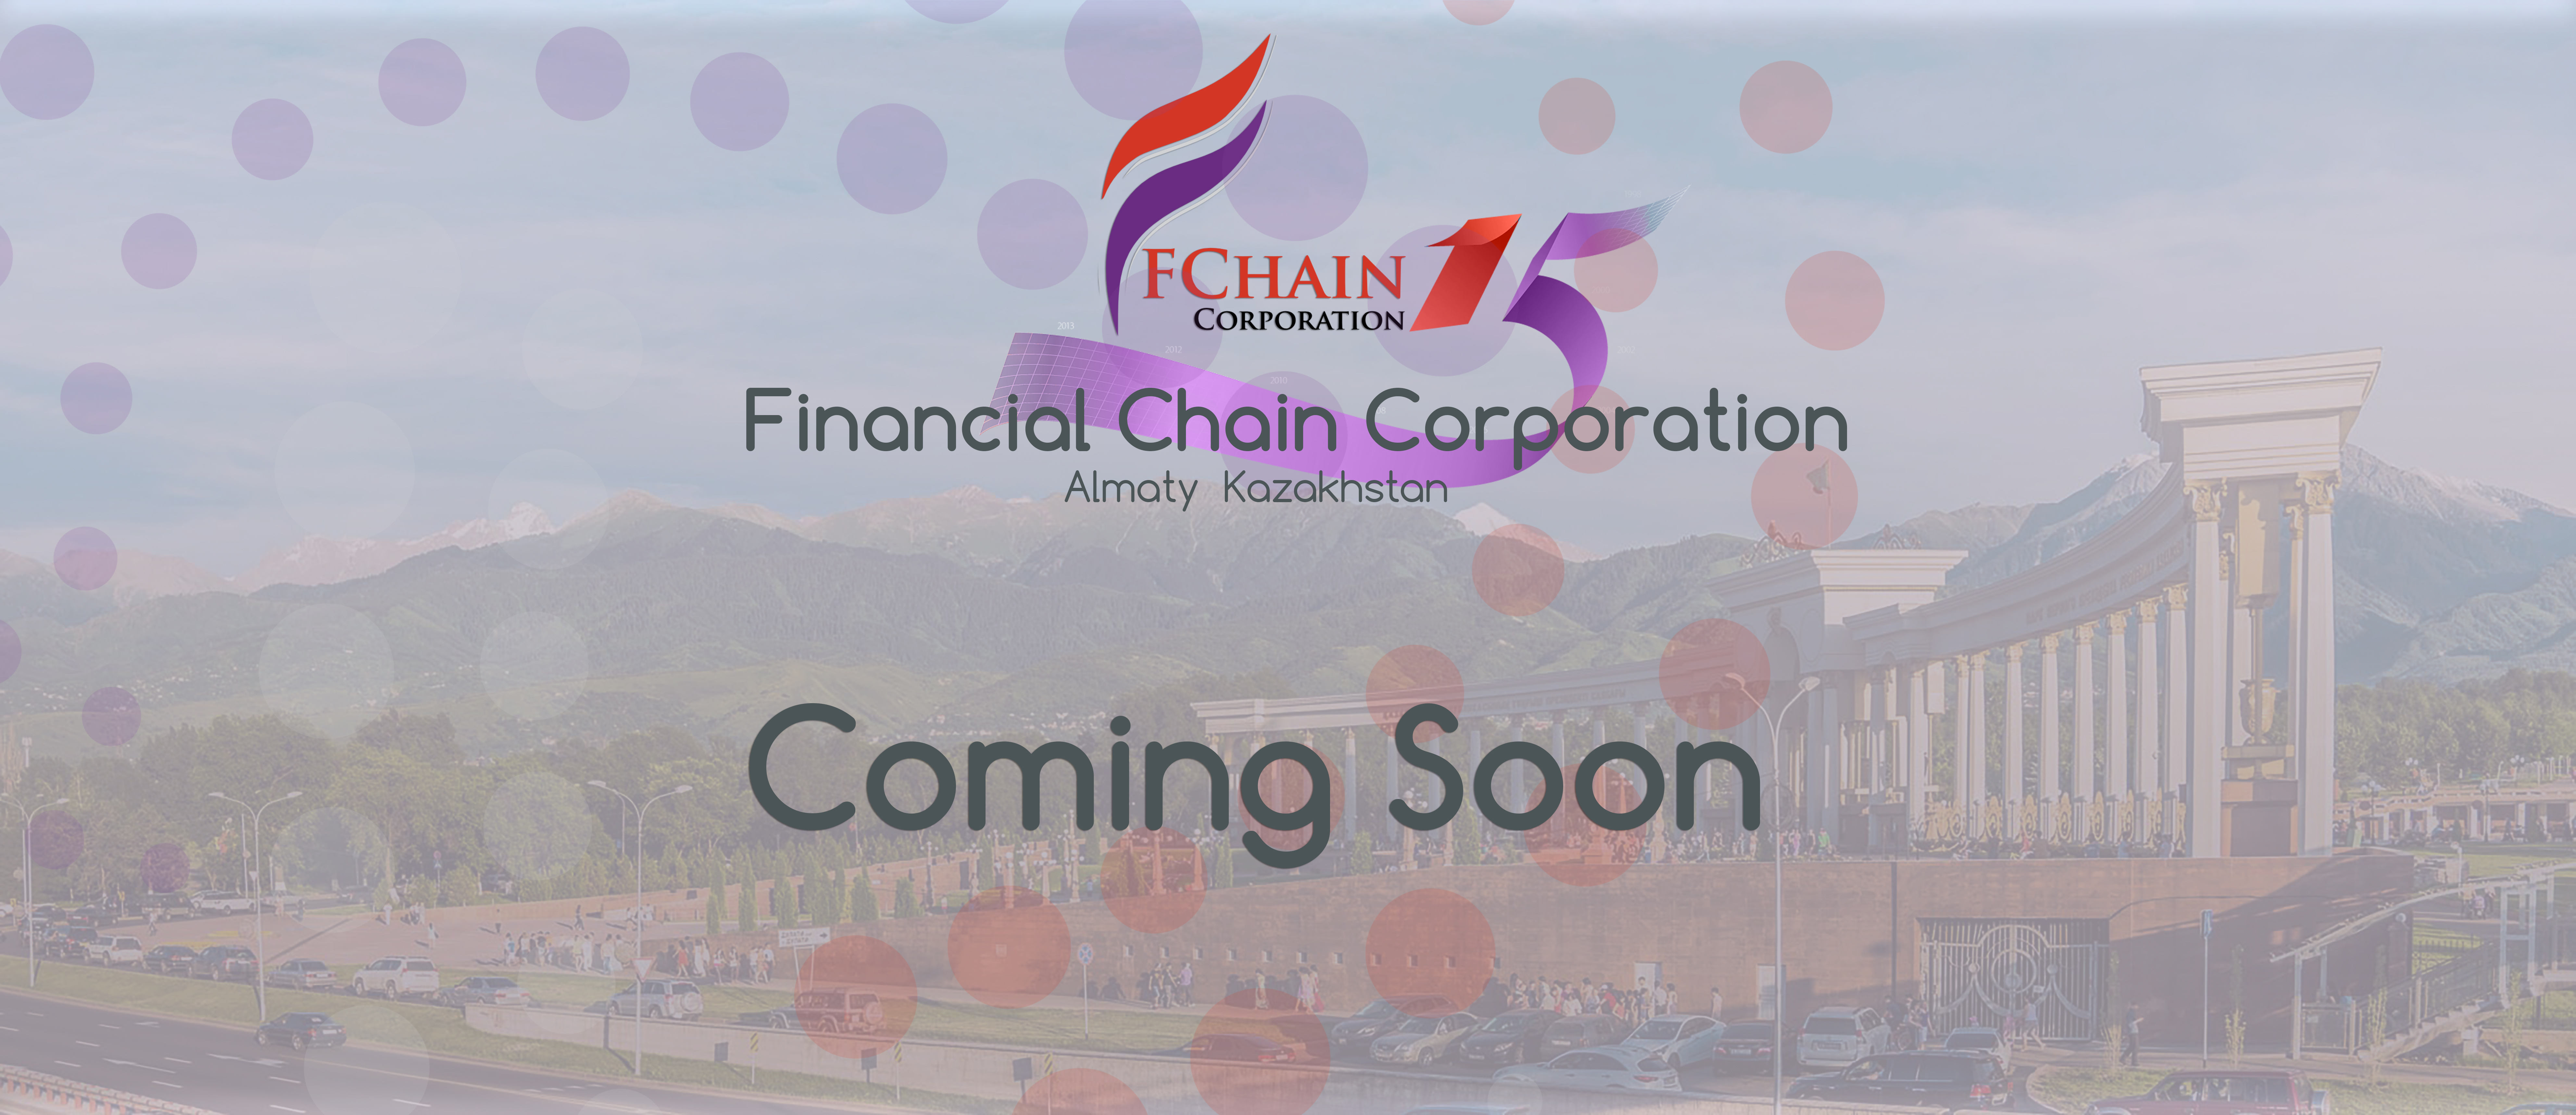 Opening FChain Office in Almaty